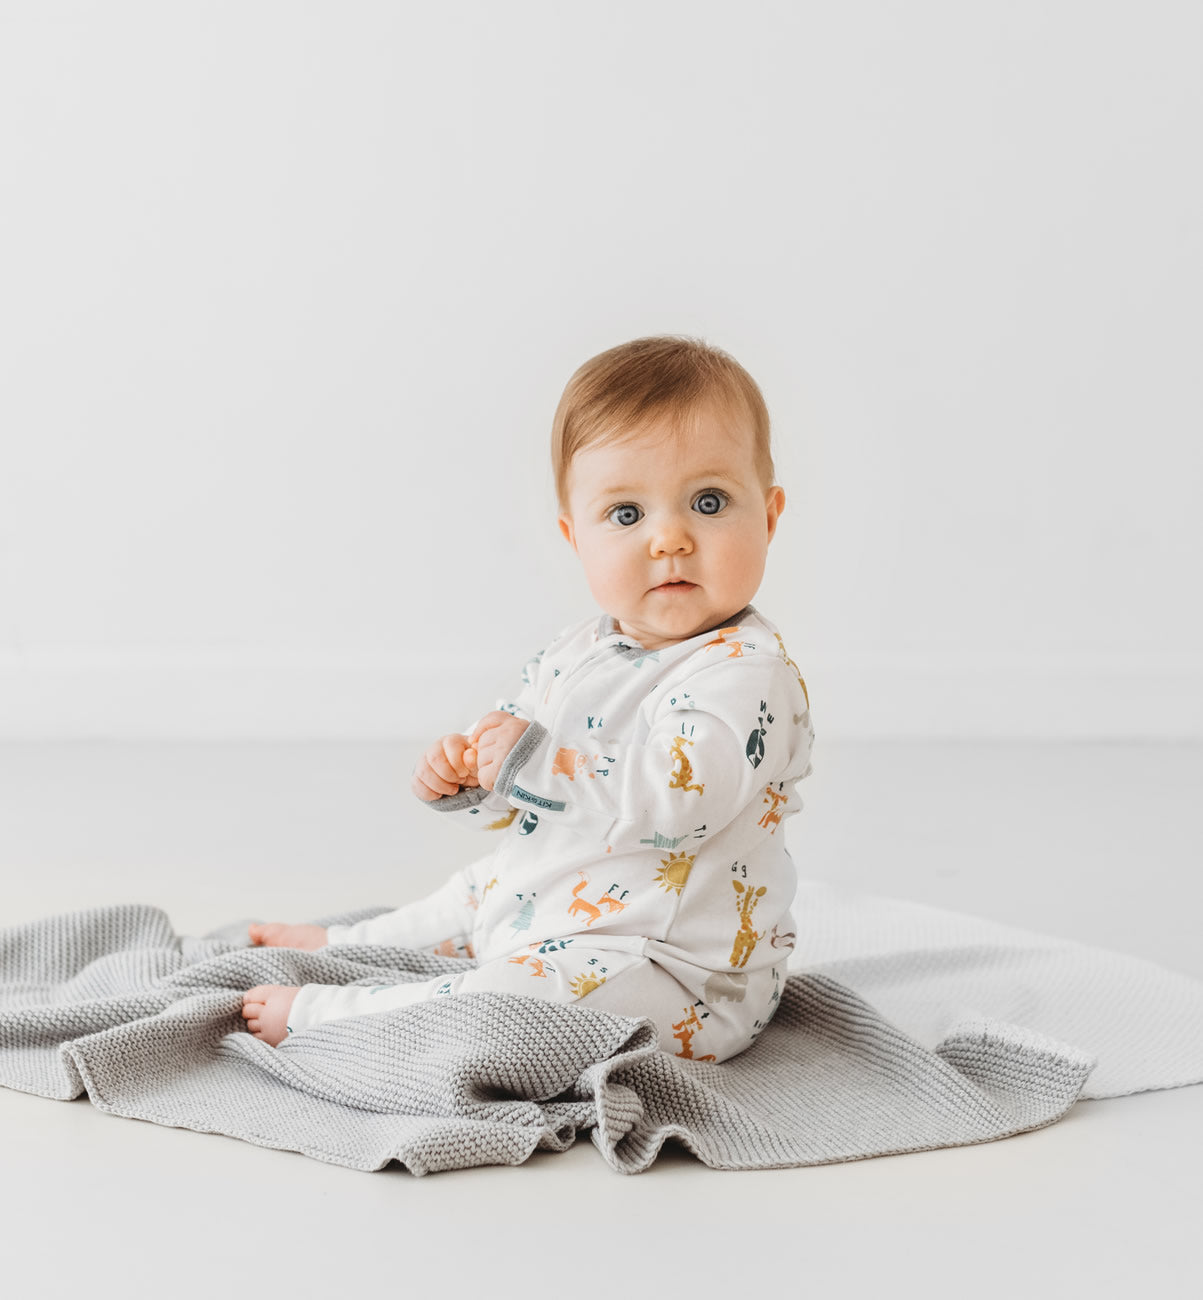 Kit & Kin sustainable All-in-one 3 to 6 months